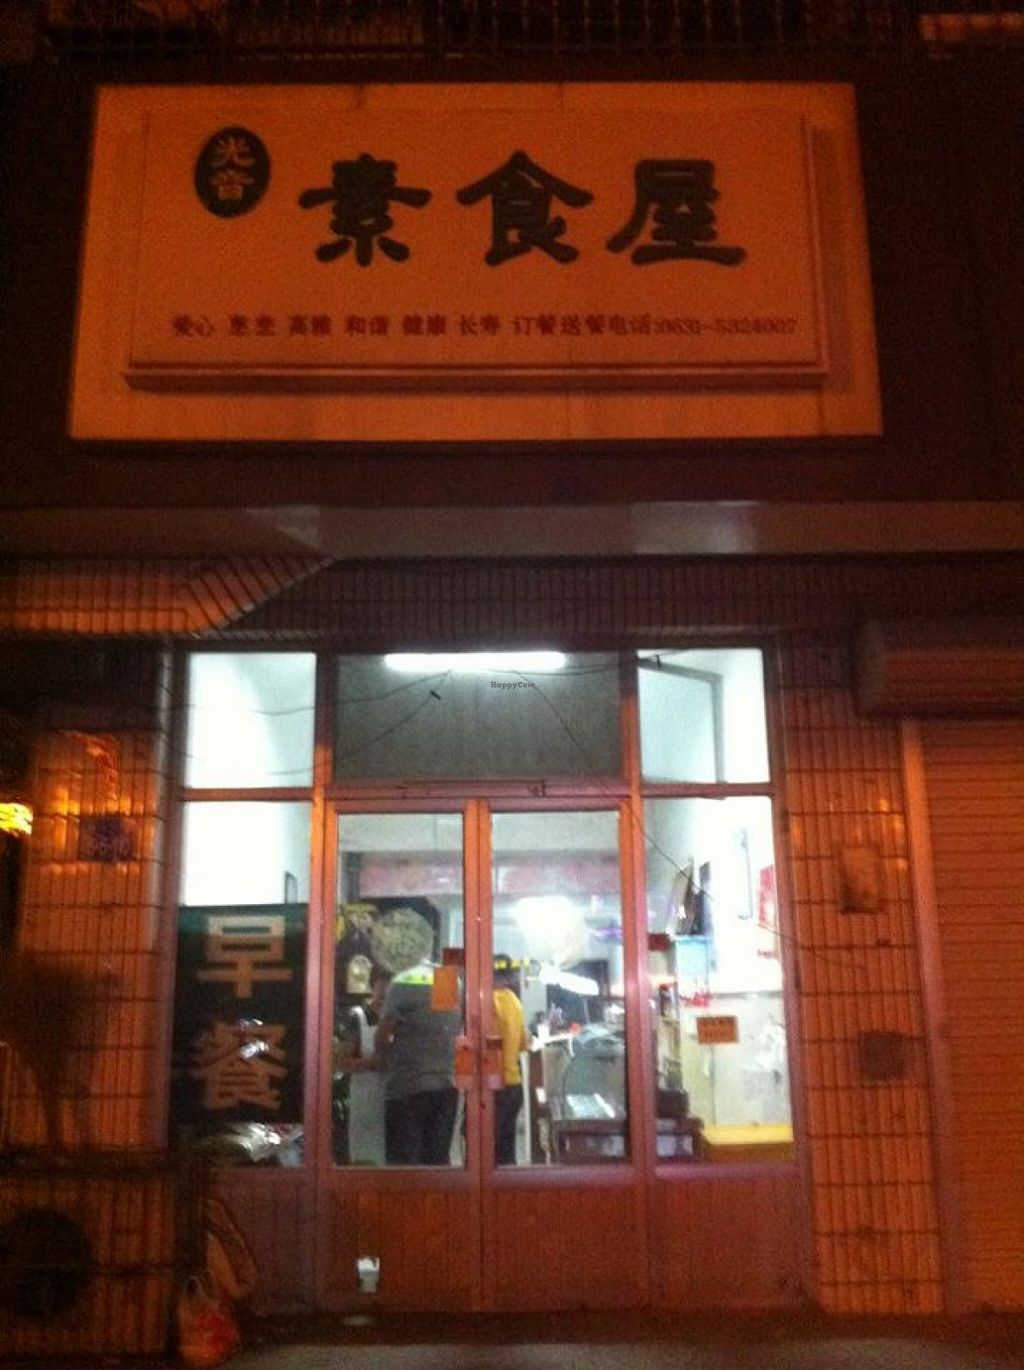 """Photo of Guangyin Vegetarian House  by <a href=""""/members/profile/harryang"""">harryang</a> <br/>Restaurant <br/> April 14, 2016  - <a href='/contact/abuse/image/18279/144507'>Report</a>"""